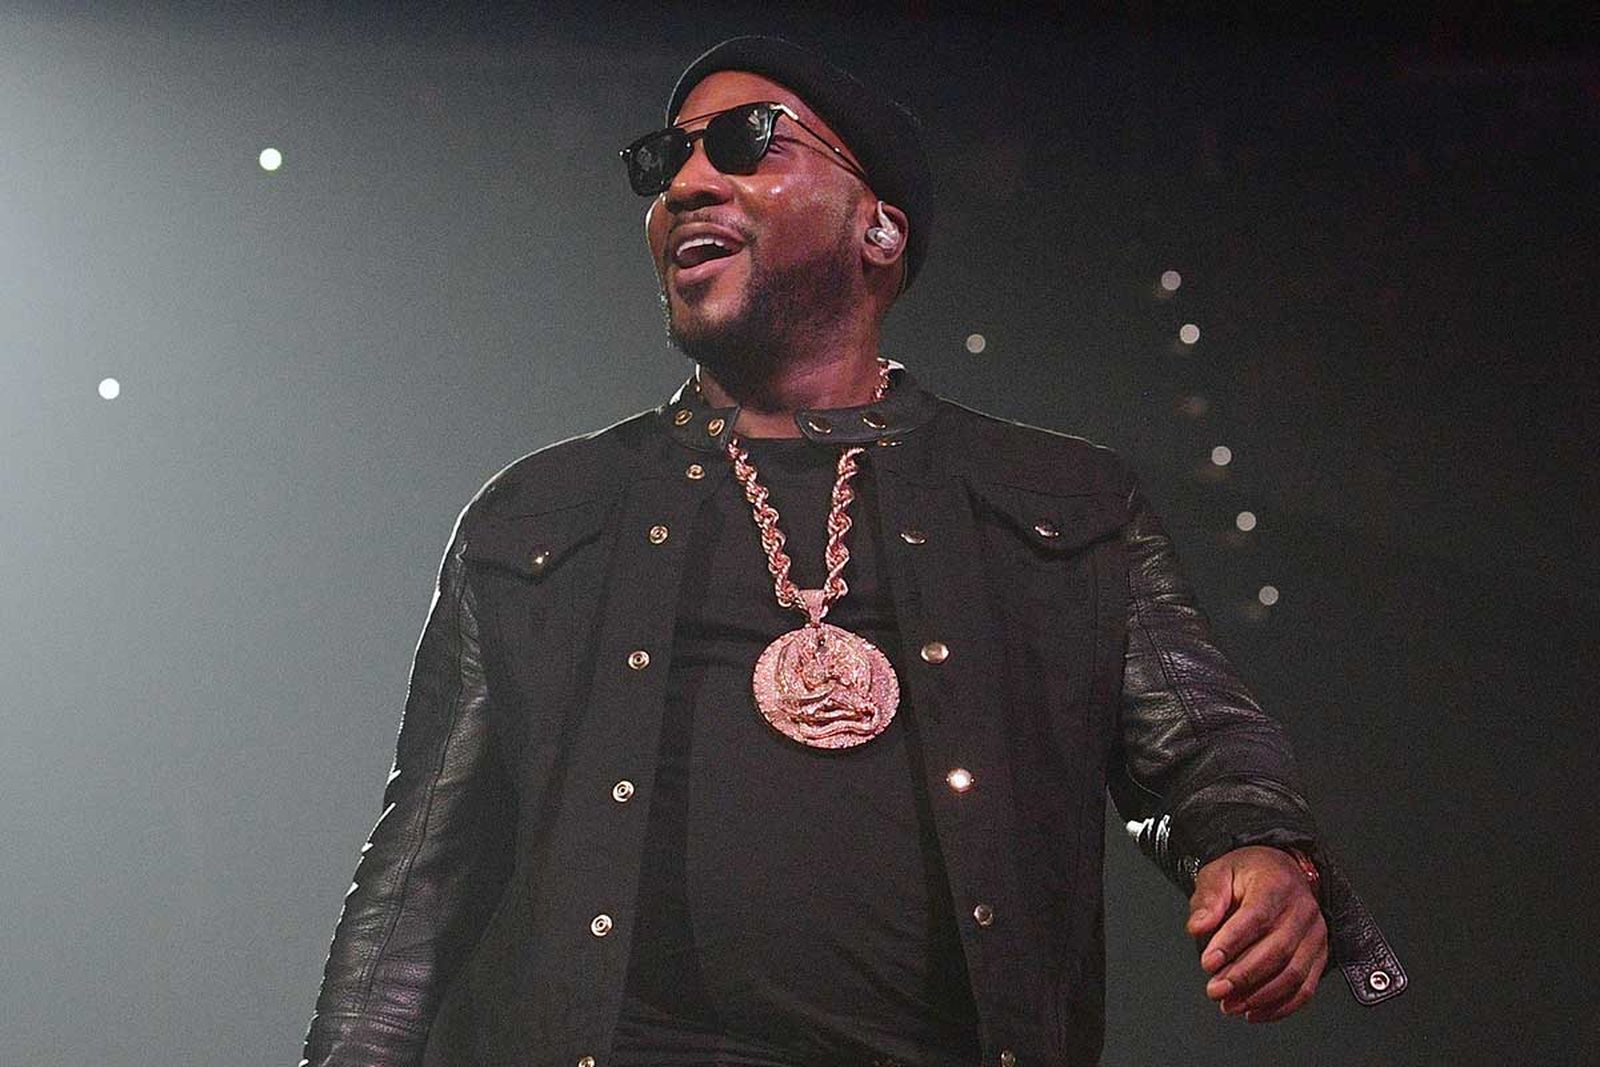 Jeezy performing live